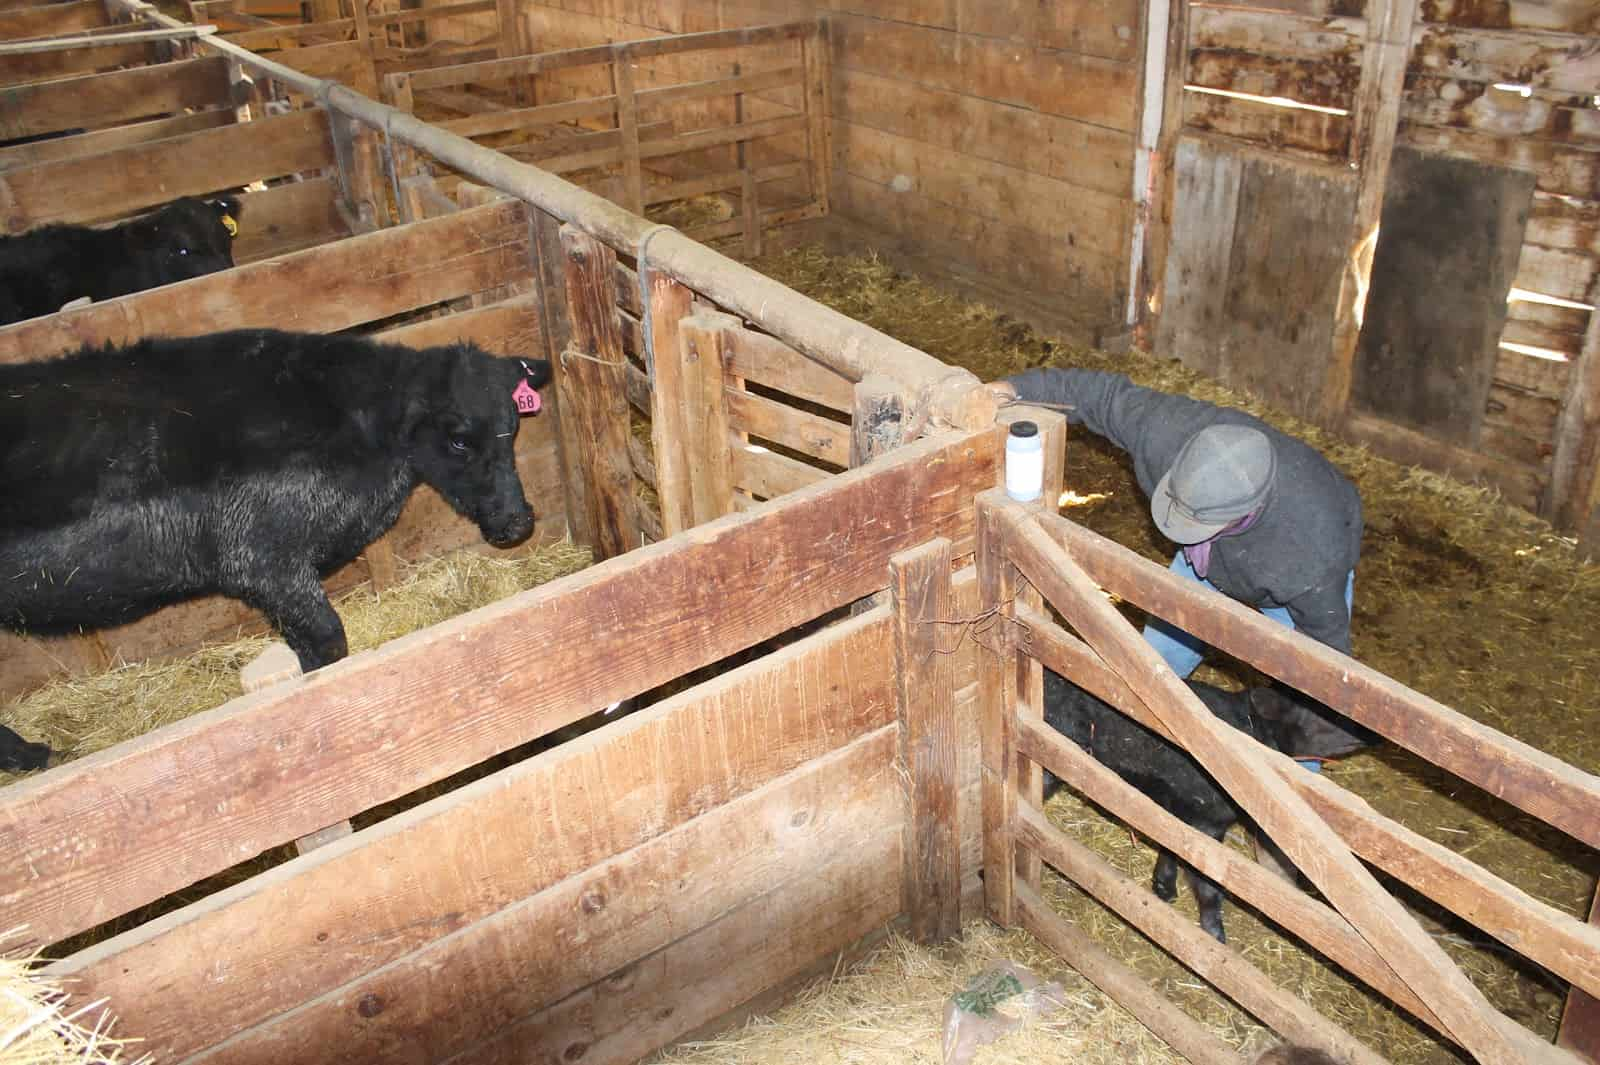 cow looking at calf in barn